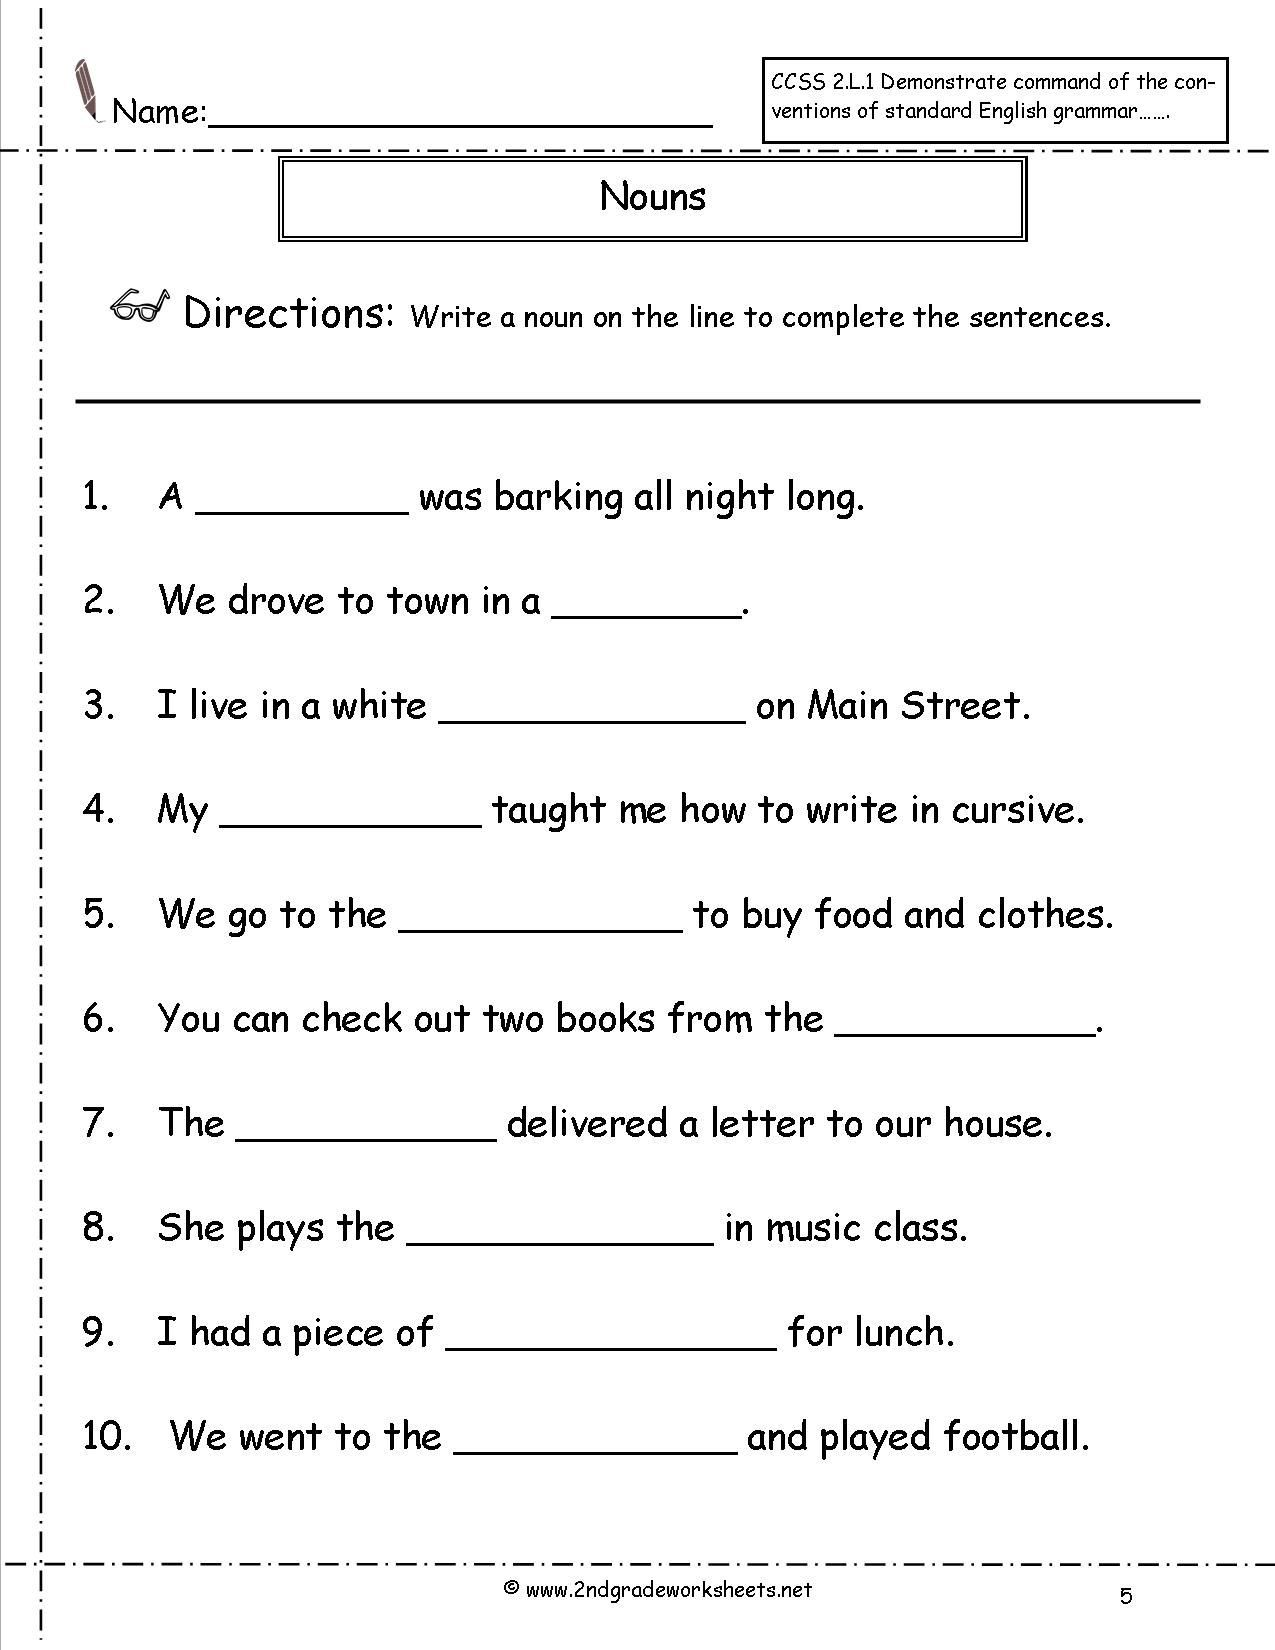 English Grammar Noun Worksheet For Grade 1 Elegant Nouns